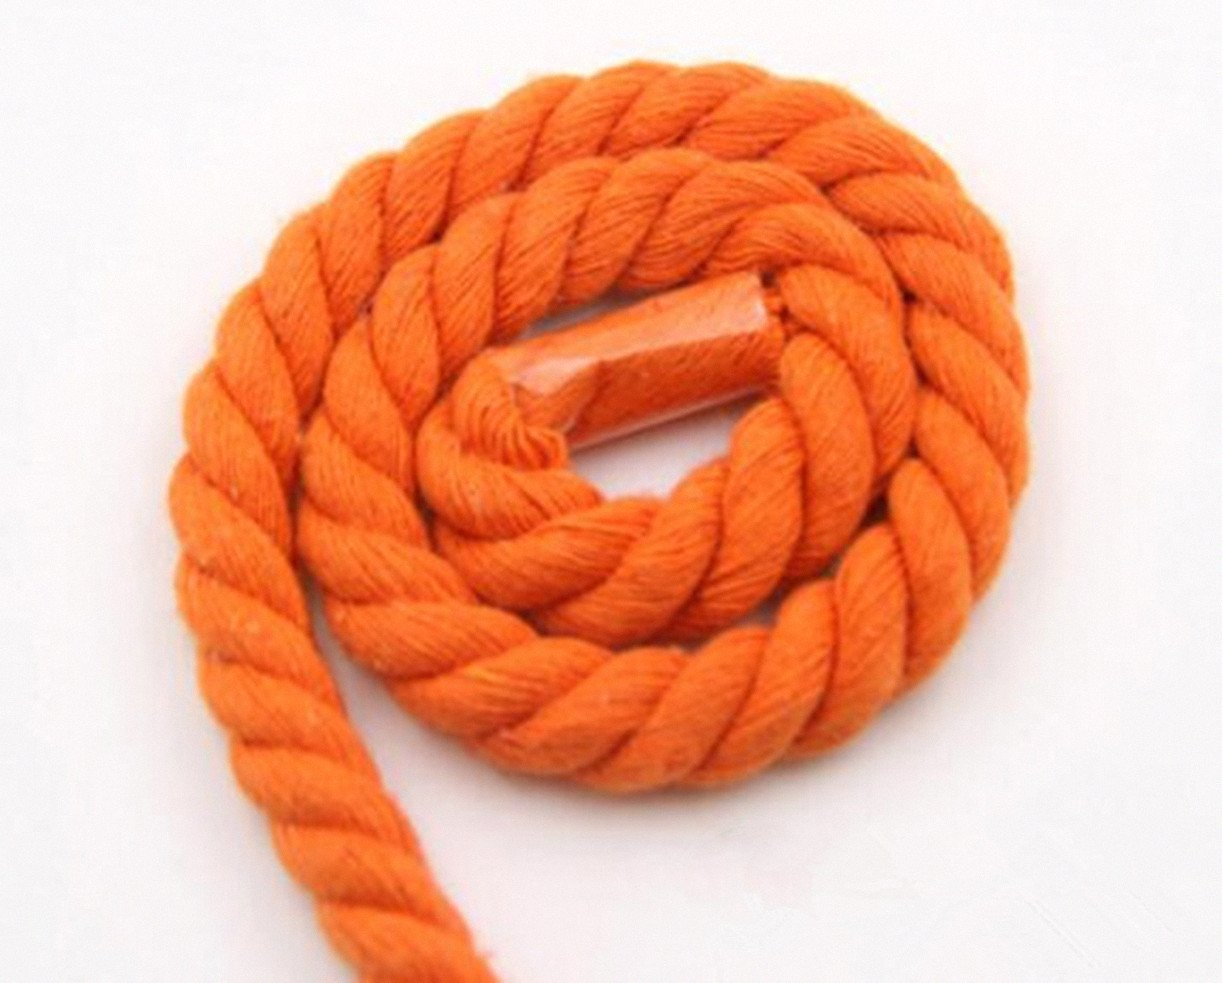 WellieSTR (100Metters/109yards) ORANGE 3 Shares Twisted Cotton Cords 8mm DIY Craft Decoration Rope Cotton Cord for Bag Drawstring Belt by WellieSTR (Image #3)